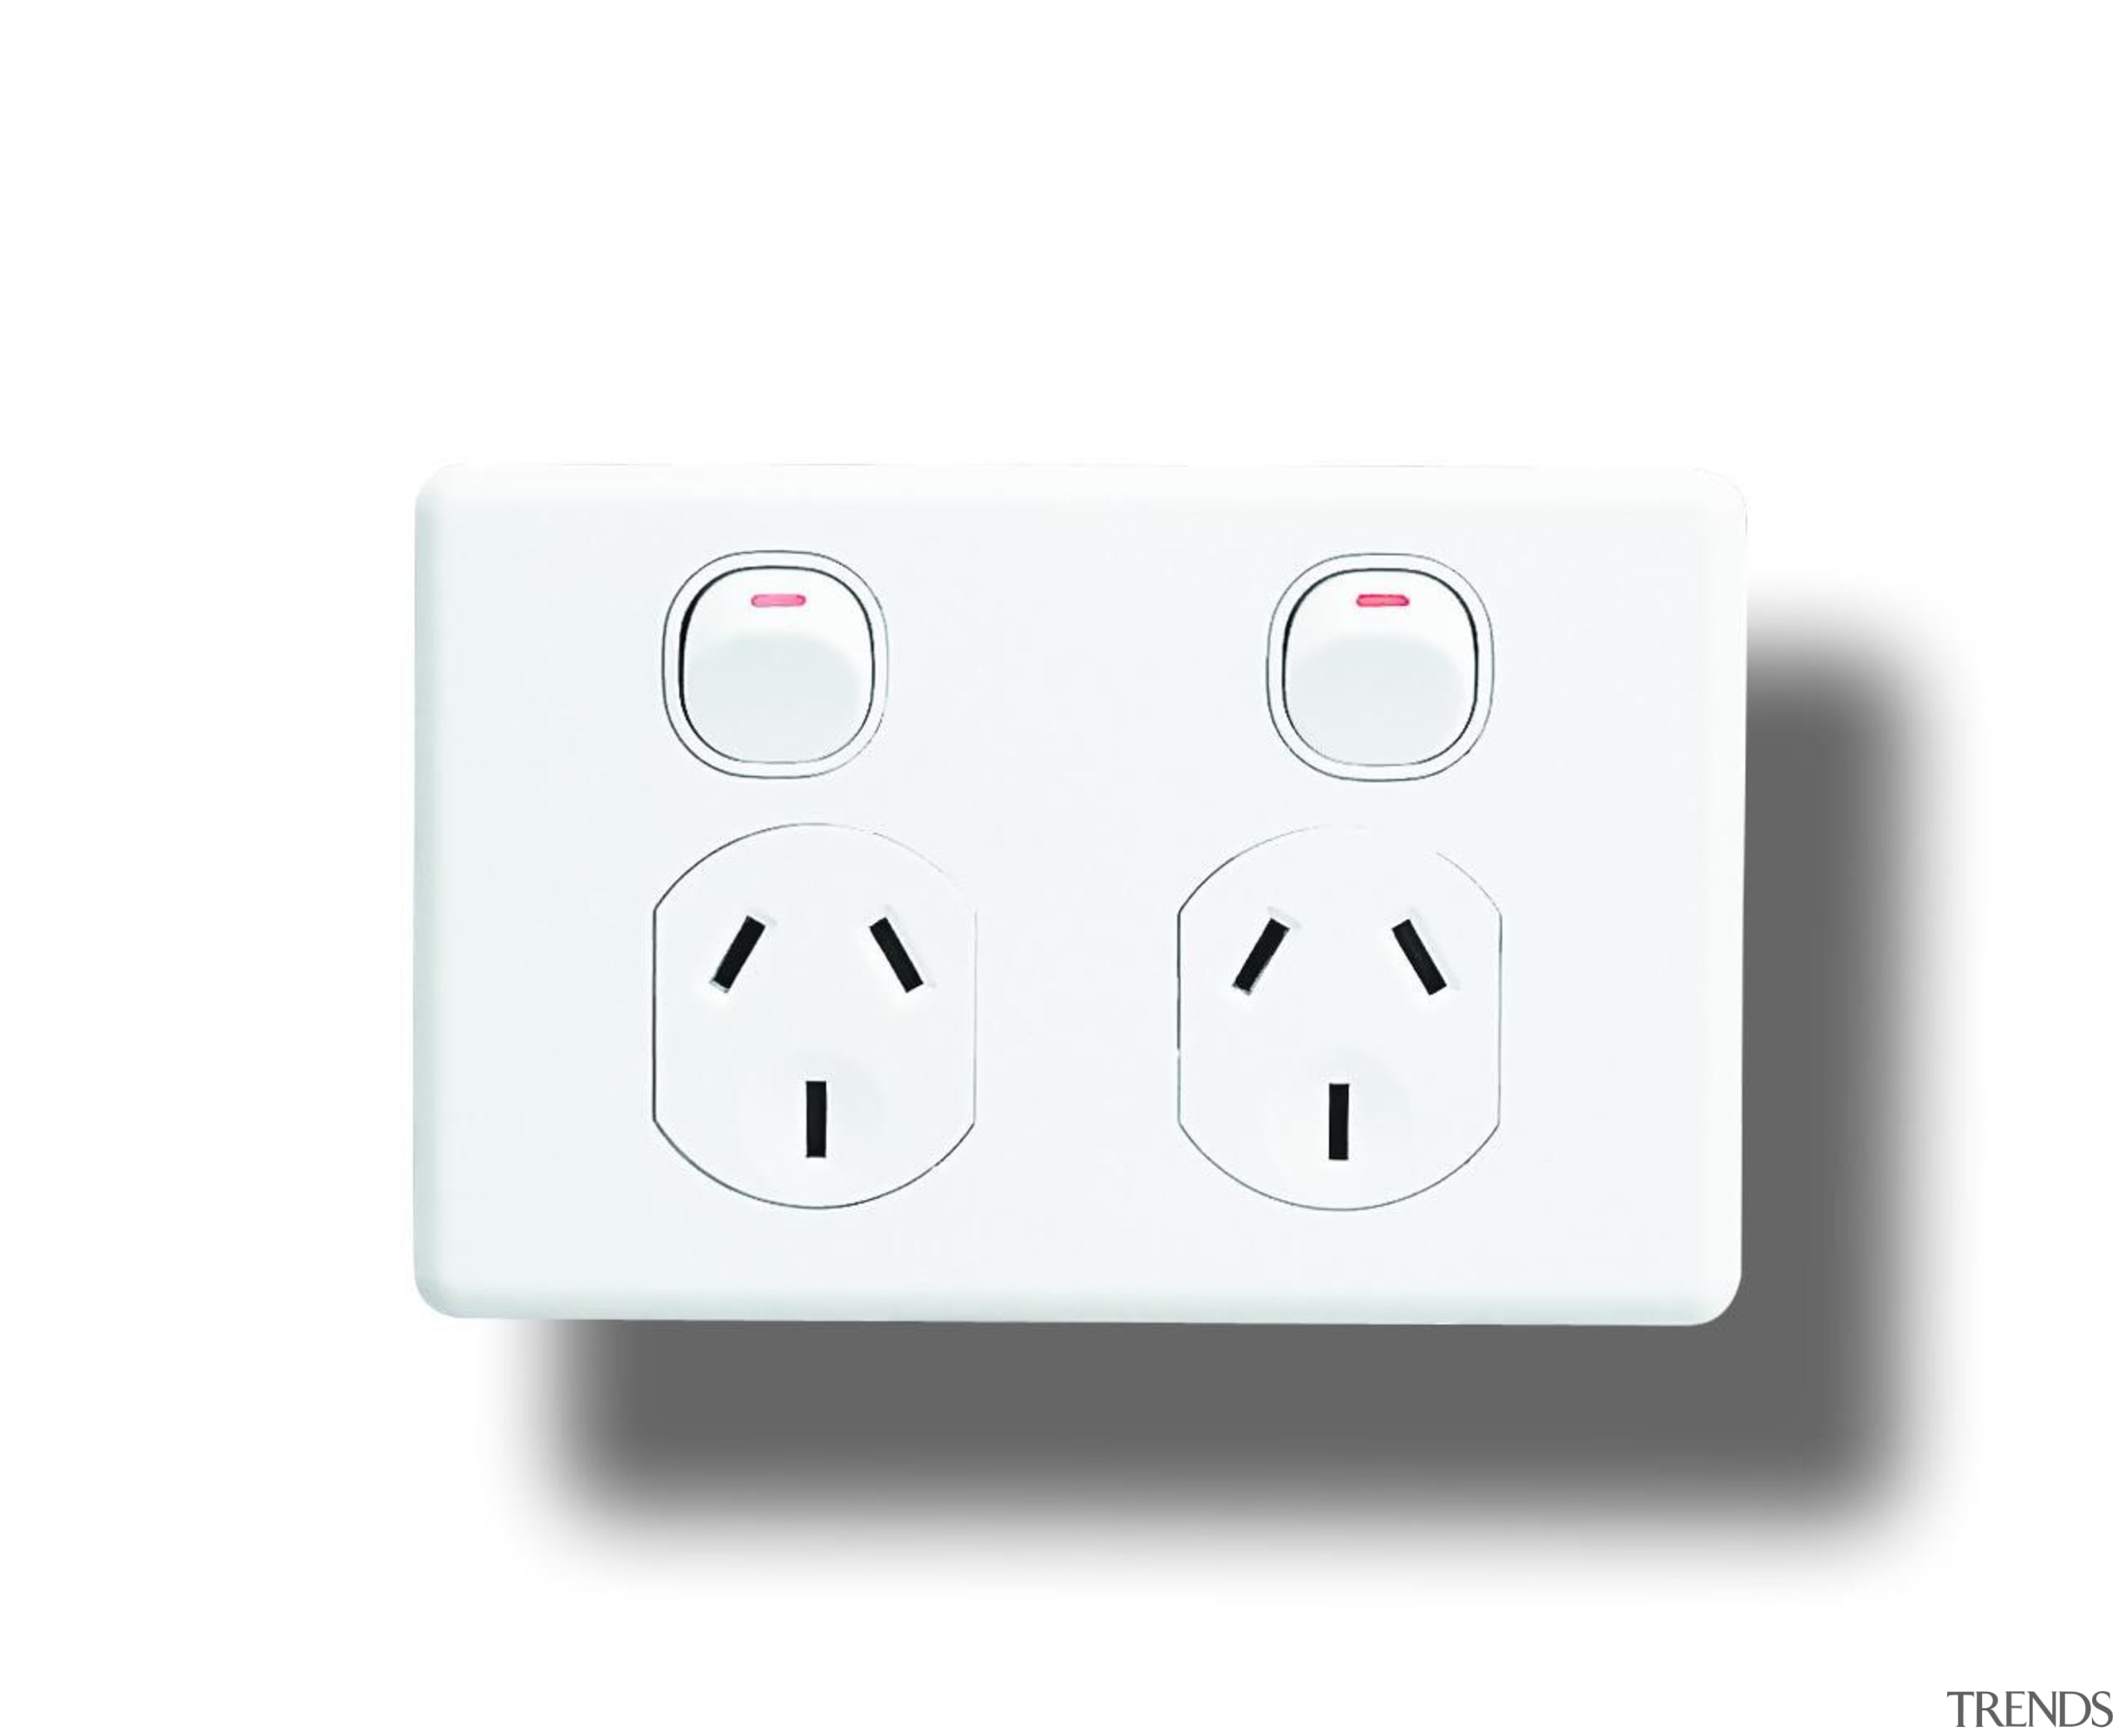 Classic C2000 double socket White - C2025 - ac power plugs and socket outlets, electronic device, electronics accessory, product, technology, white